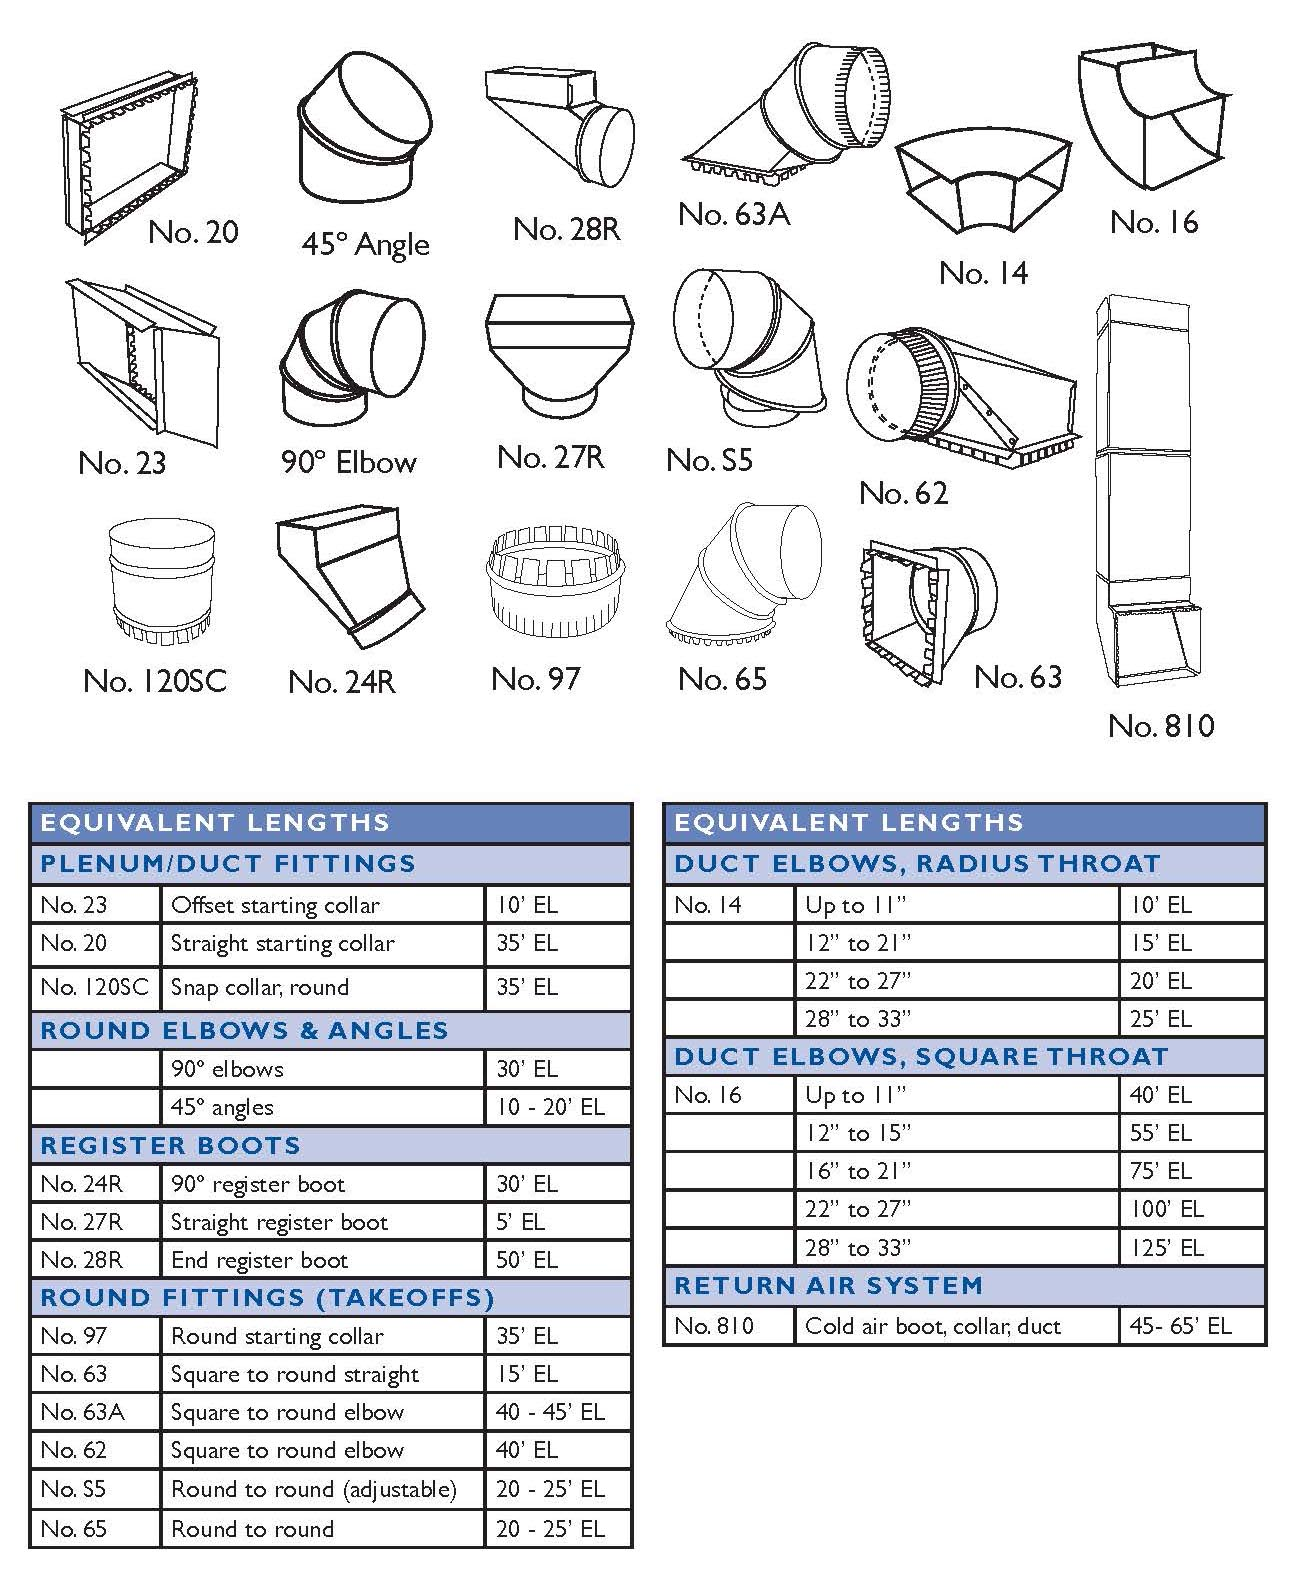 Hvac Ductwork Sizing Chart : ductwork, sizing, chart, Equivalent, Lengths, Southwark, Metal